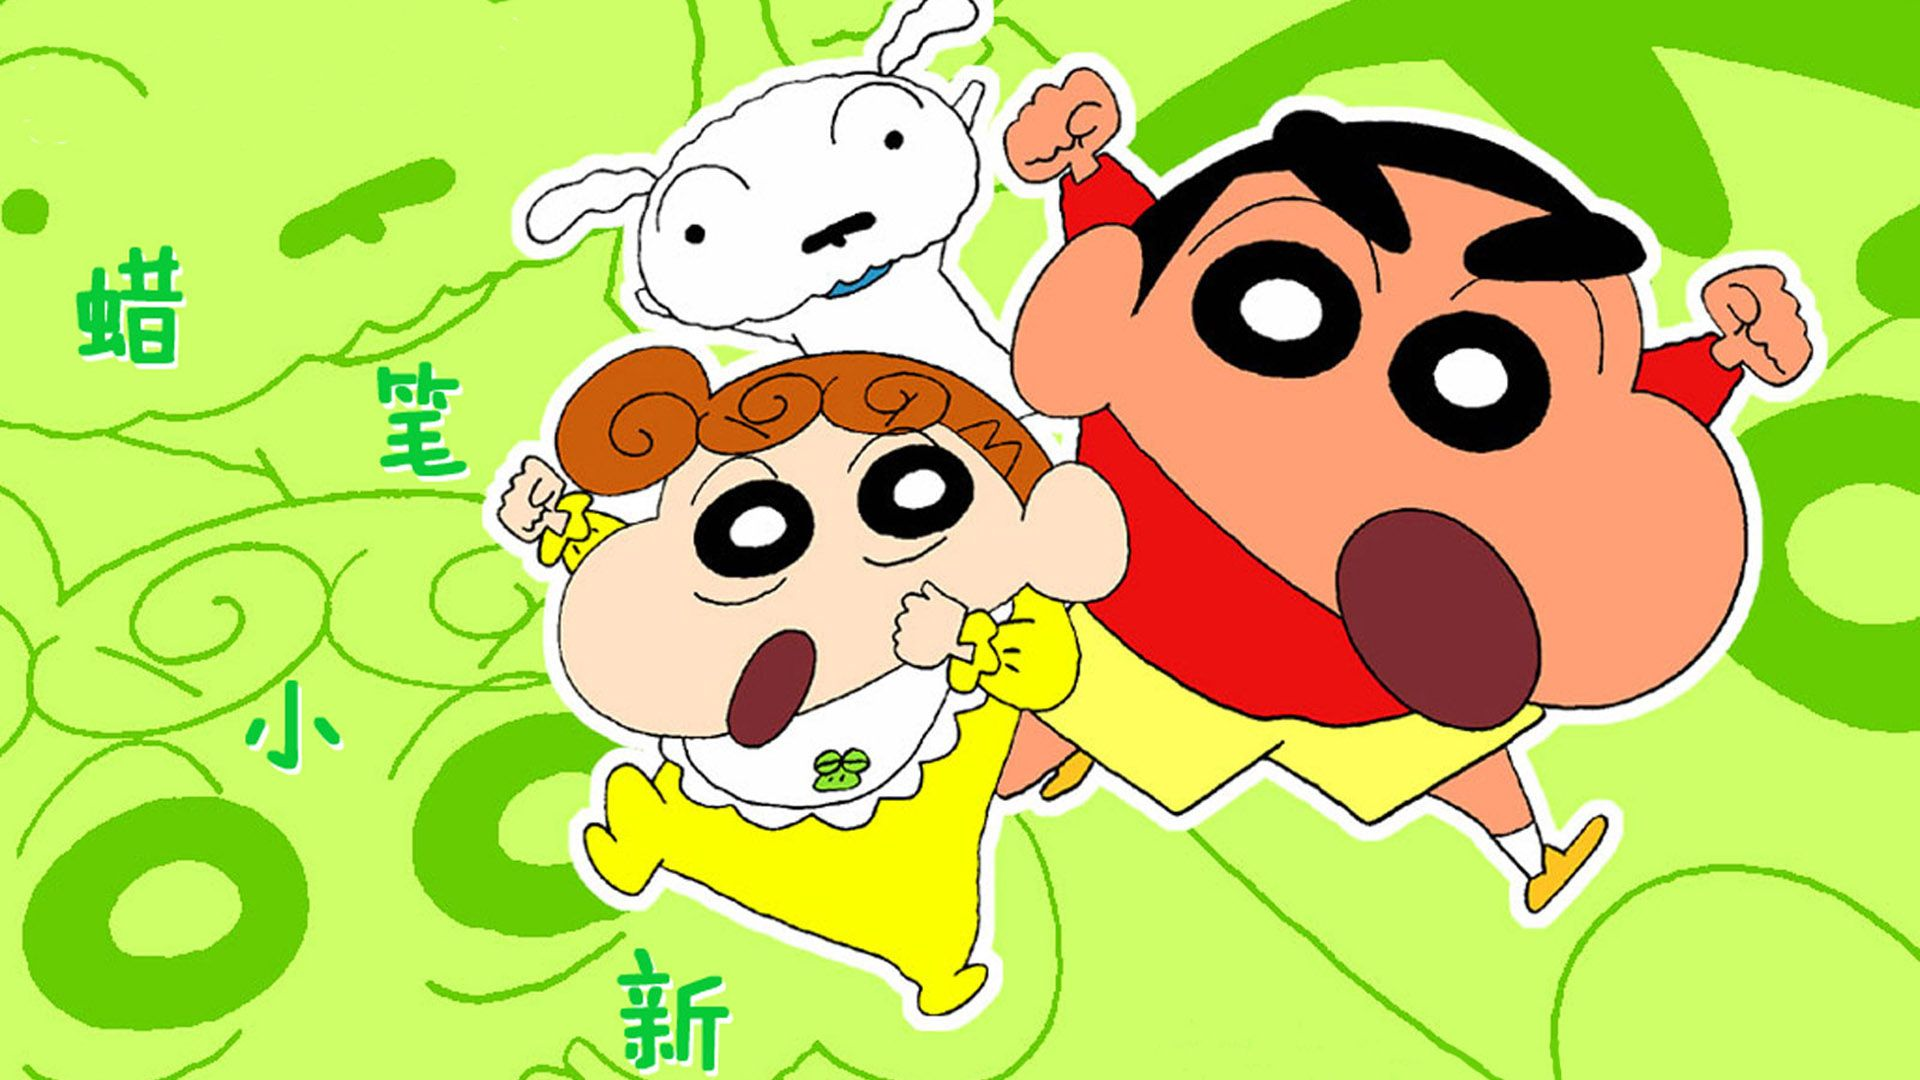 Funny Crayon Shin Chan Wallpaper Hd Android Cartoon Wallpaper Crayon Shin Chan Shin Chan Wallpapers